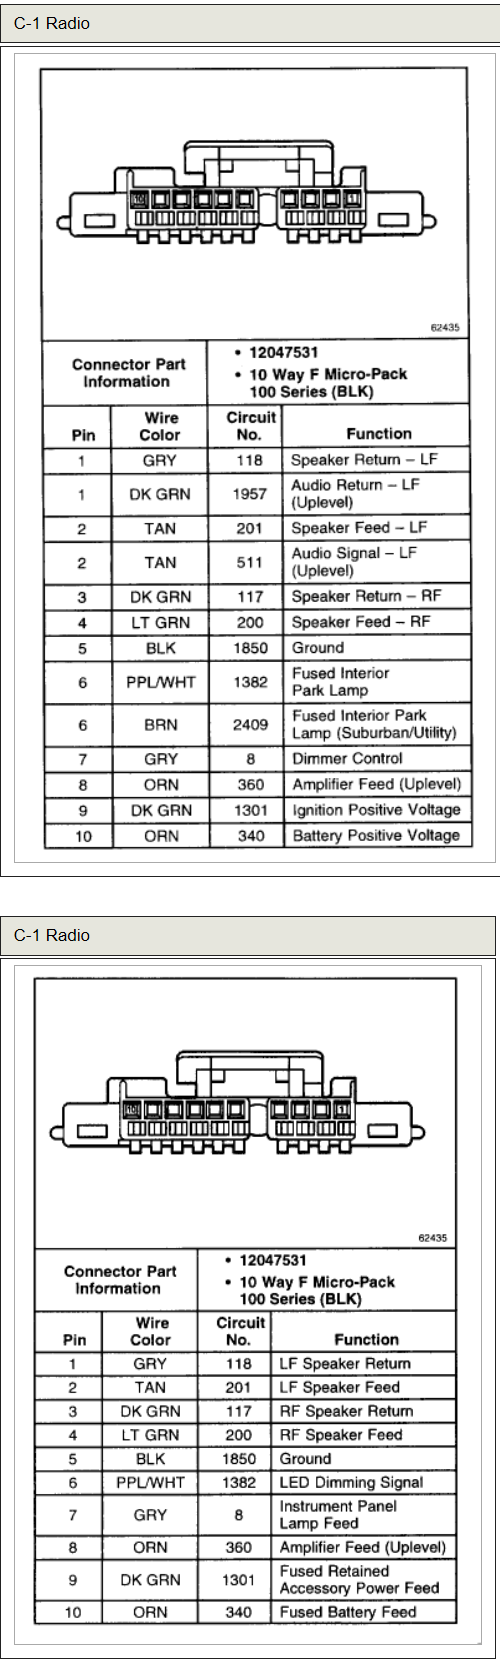 2003 chevy silverado radio wiring diagram if you have no - wiring diagram  ball-update-a - ball-update-a.lechicchedimammavale.it  lechicchedimammavale.it